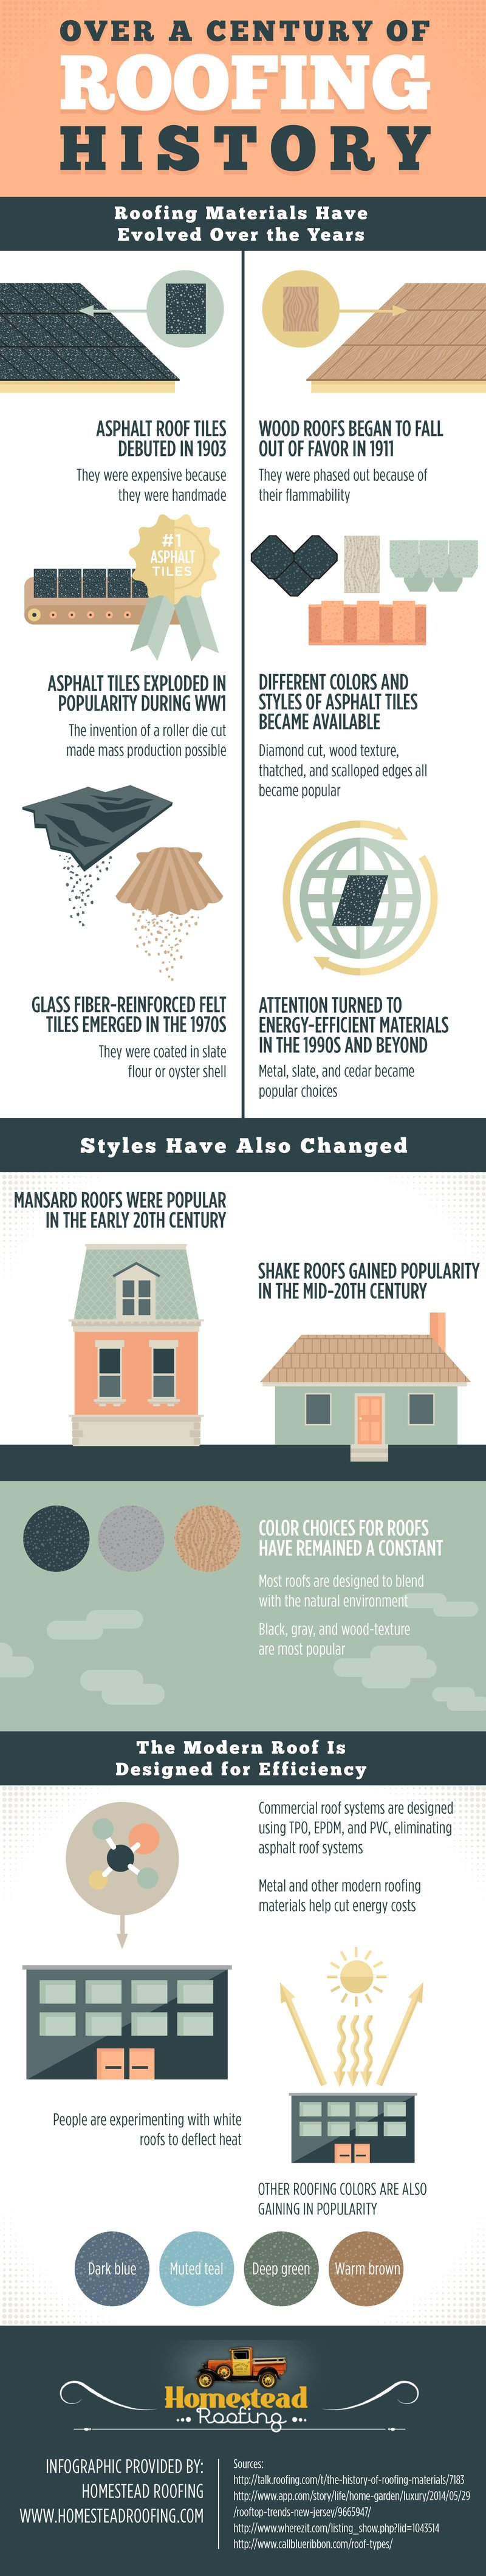 Over a Century of Roofing History by Homestead Roofing